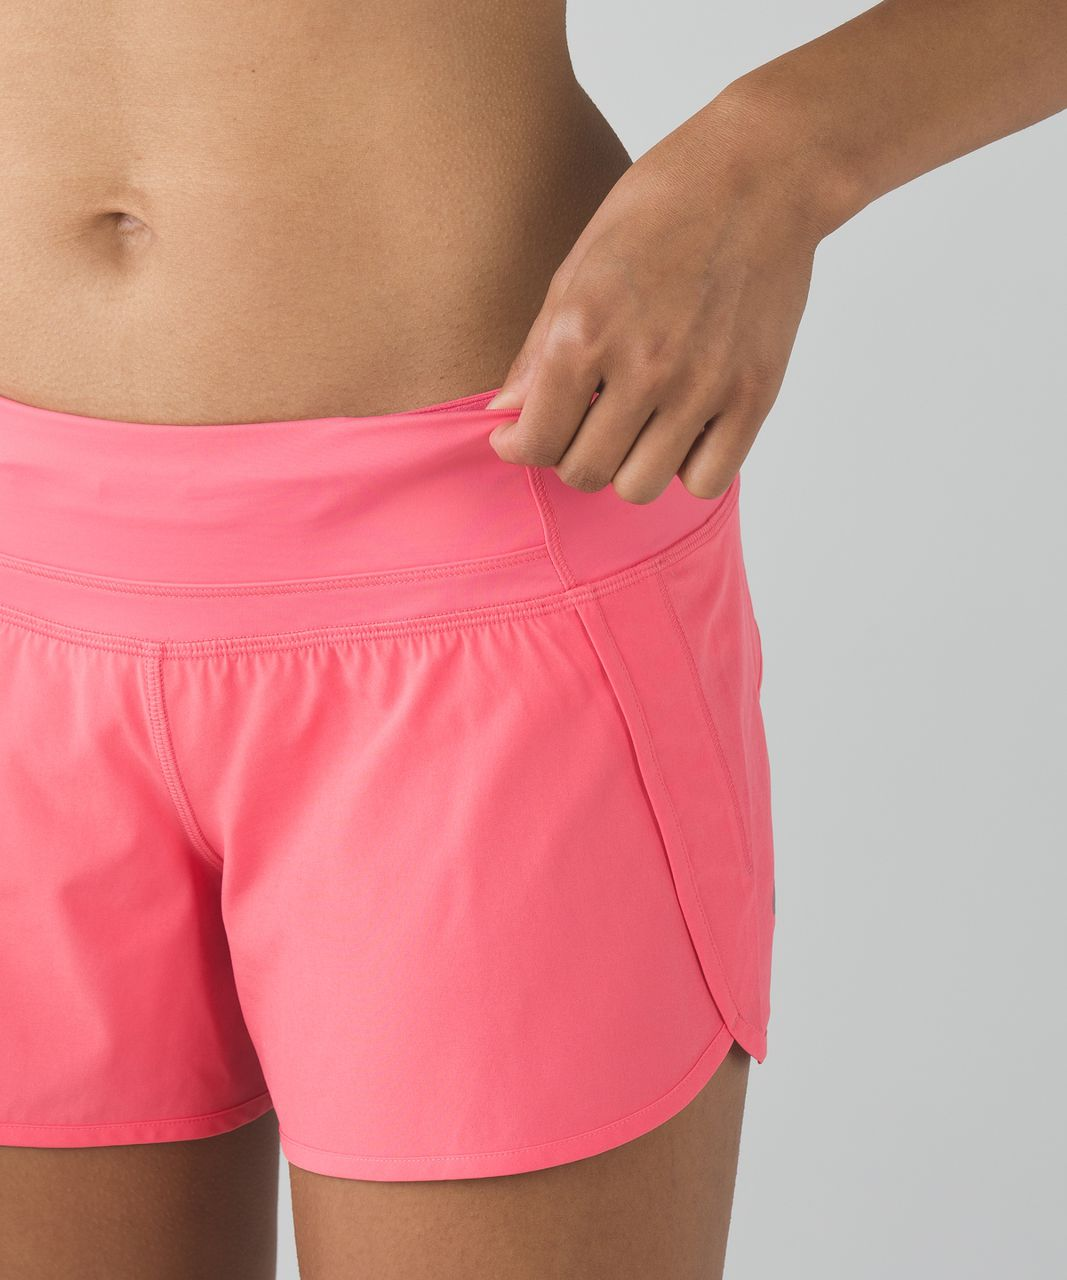 Lululemon Run Times Short *4-way Stretch - Pink Lemonade